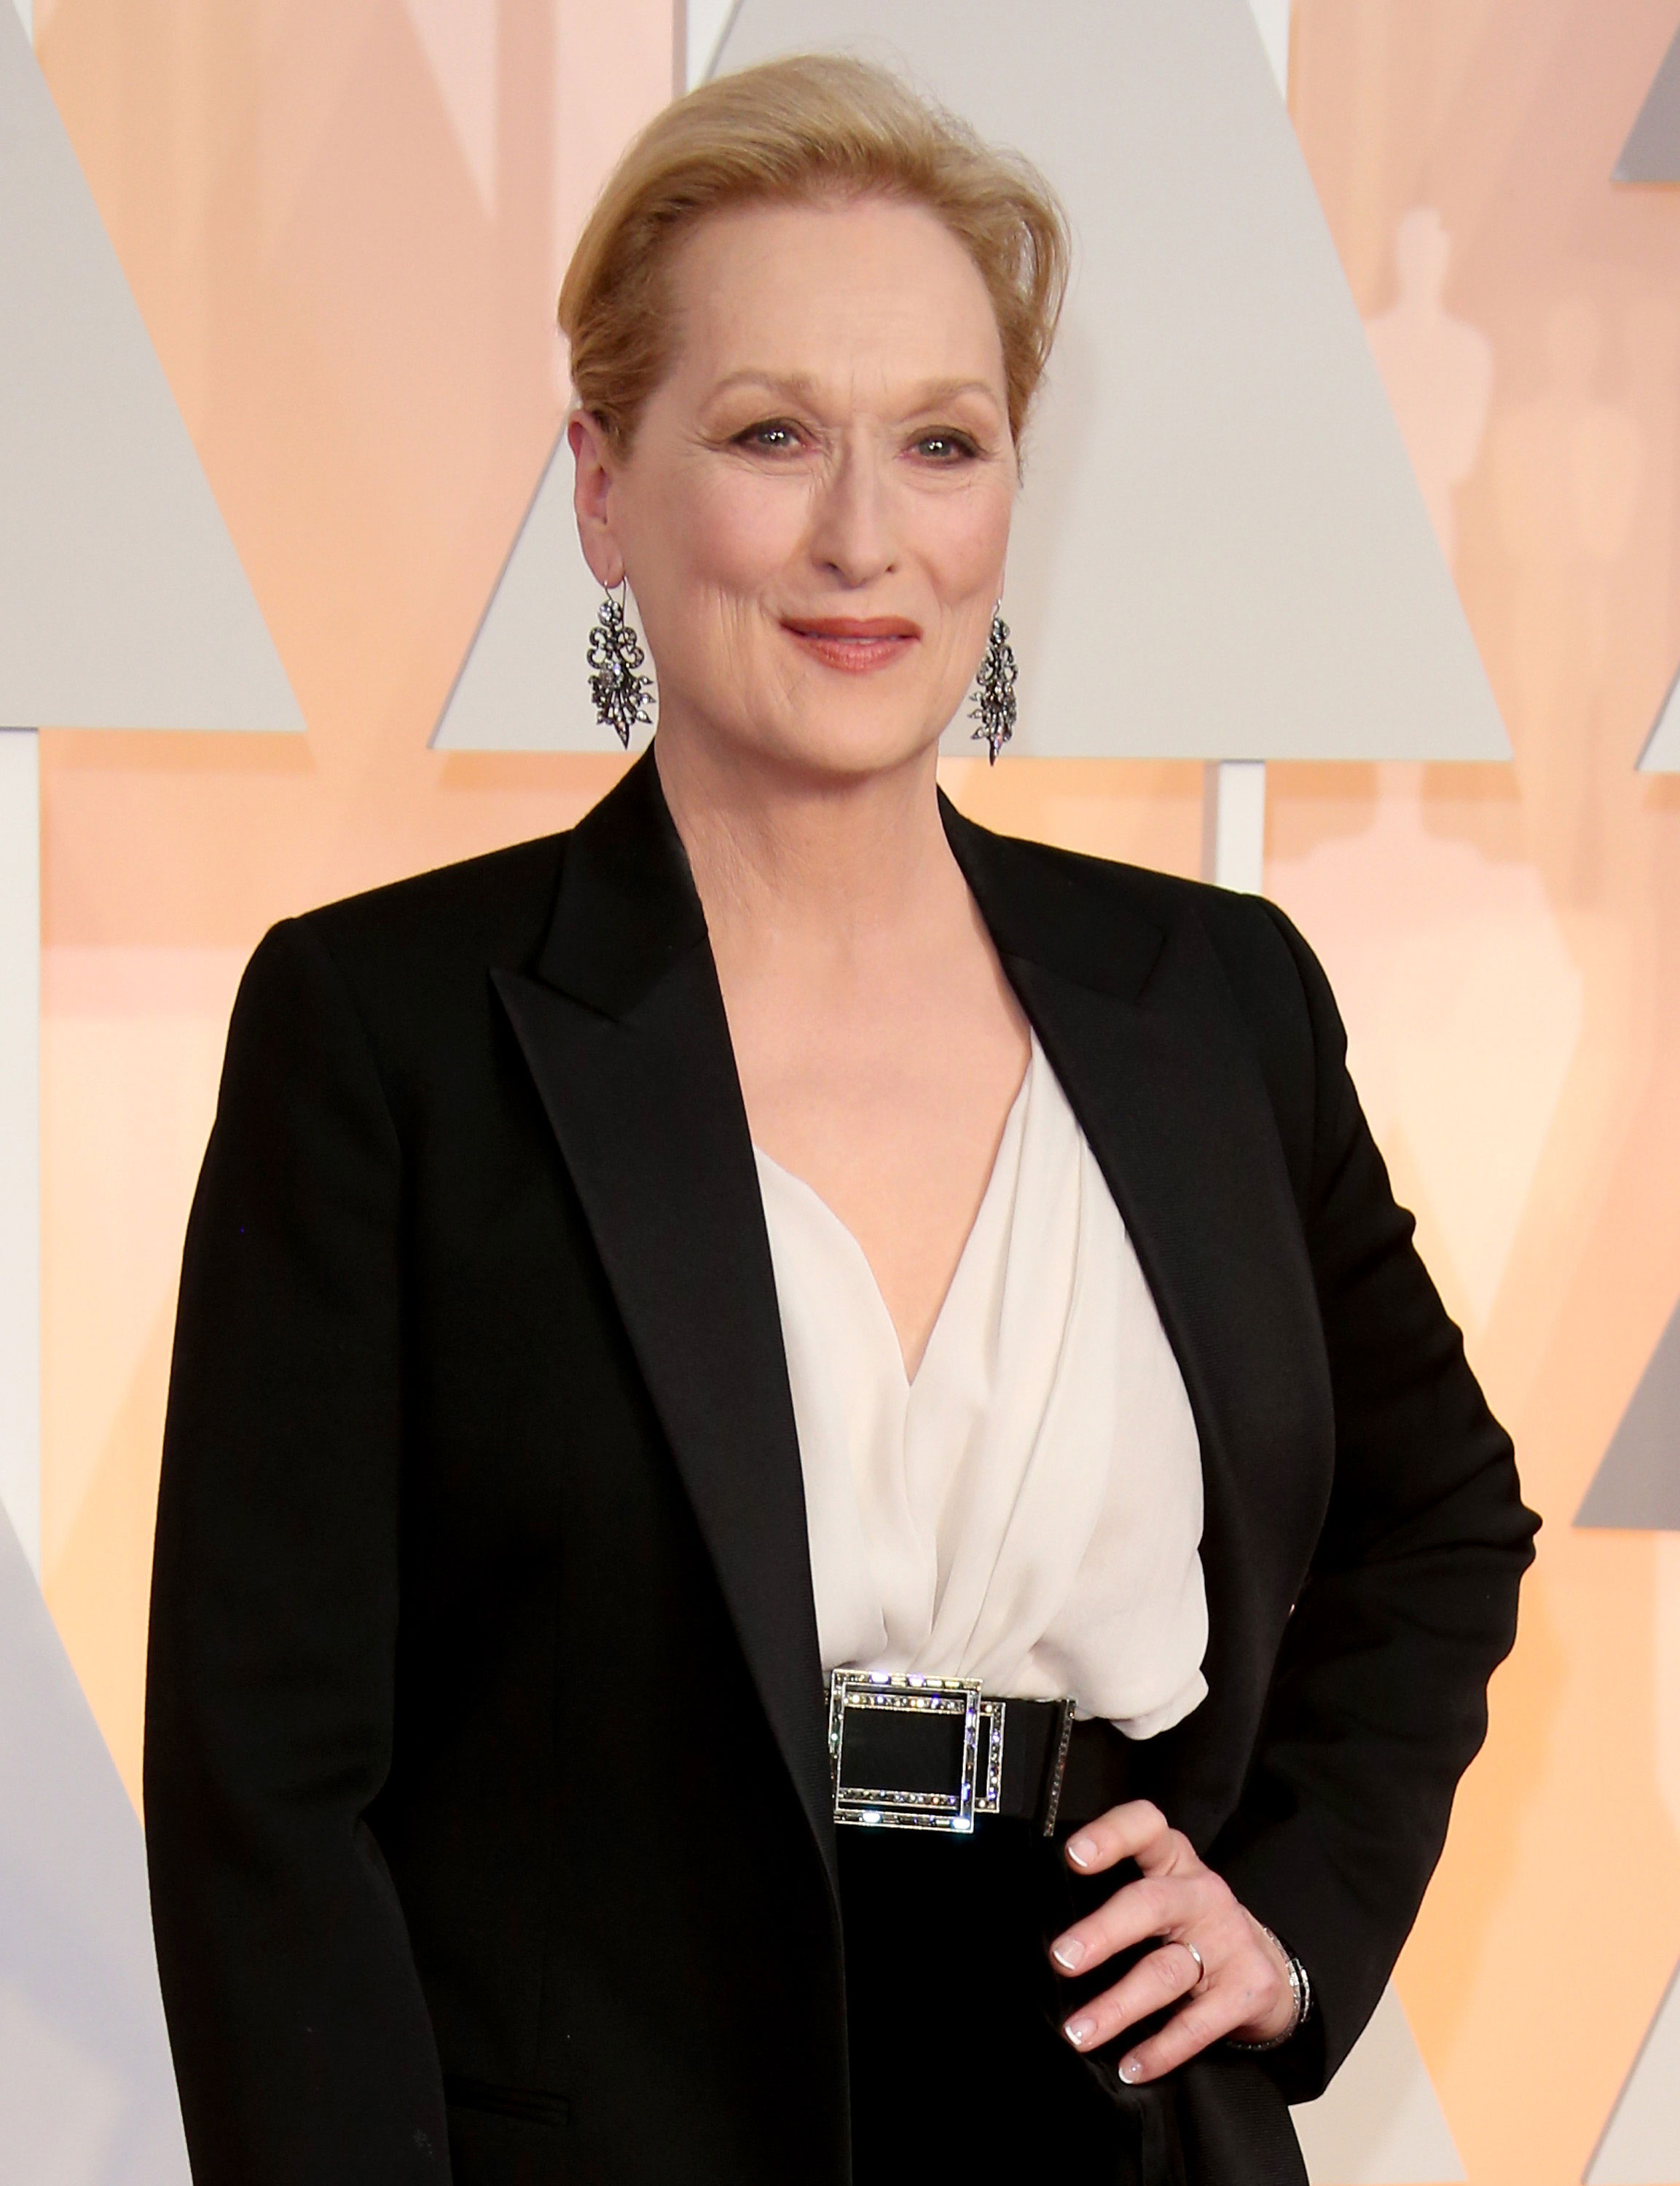 Meryl Streep arrives at the 87th Annual Academy Awards.